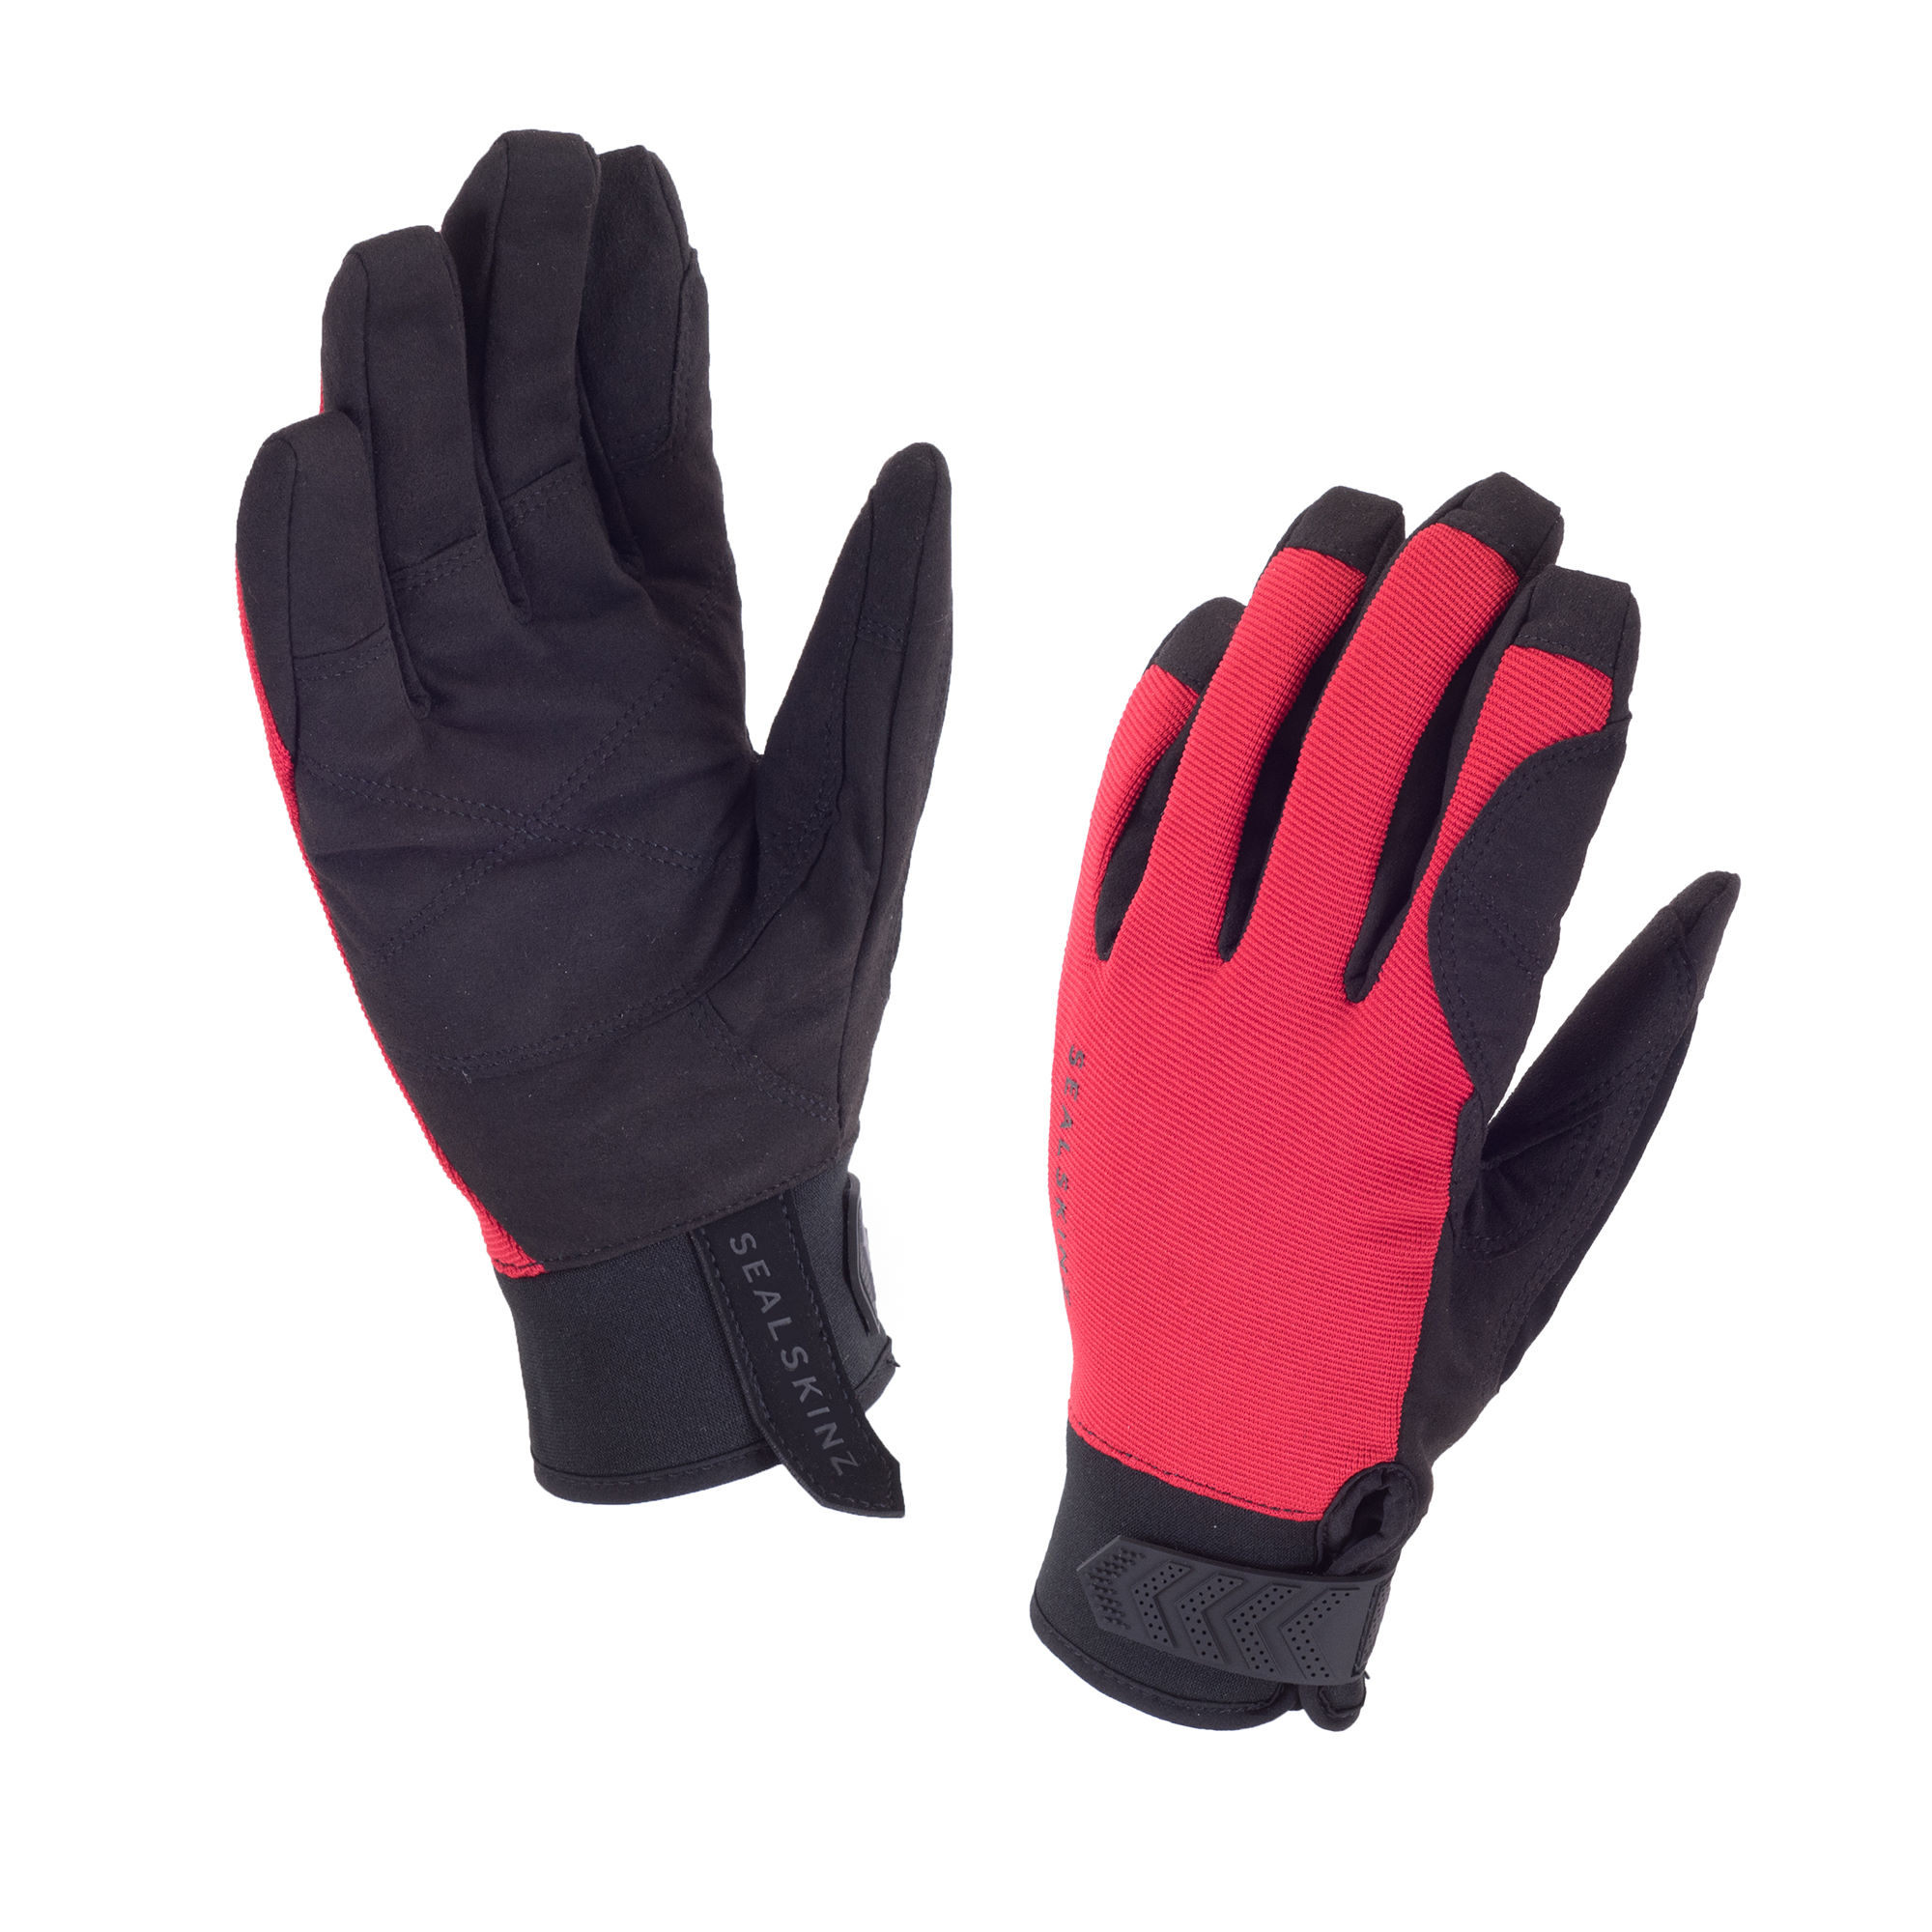 Winter is a tough time of year for even the hardiest of riders to enjoy riding motorcycles, and good winter gloves are a must for all-season riders.